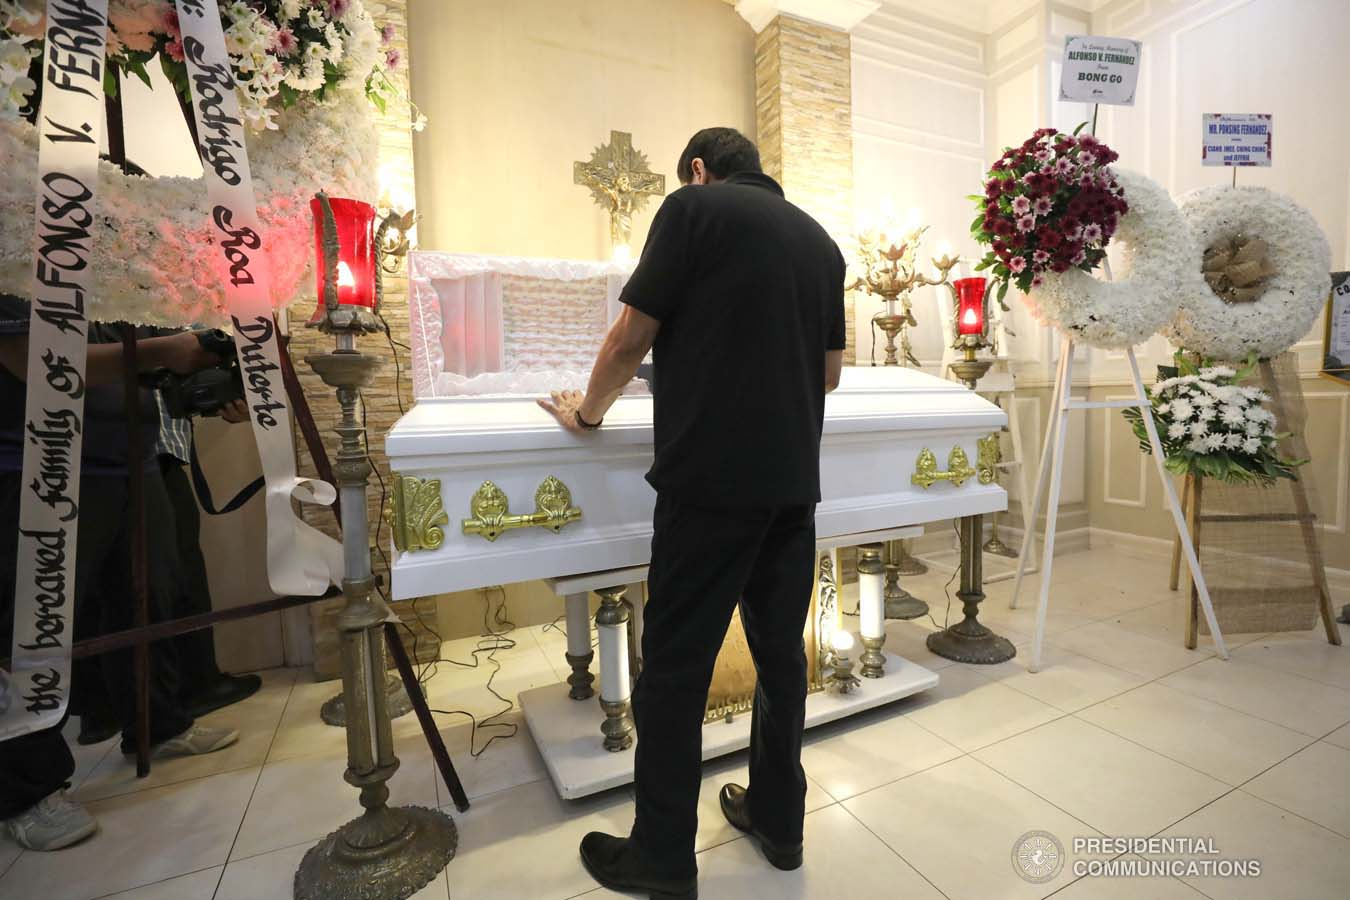 President Rodrigo Roa Duterte pays his last respects to Alfonso Fernandez as he visits the wake at the Cosmopolitan Funeral Homes in Davao City on September 21, 2019. KARL NORMAN ALONZO/PRESIDENTIAL PHOTO